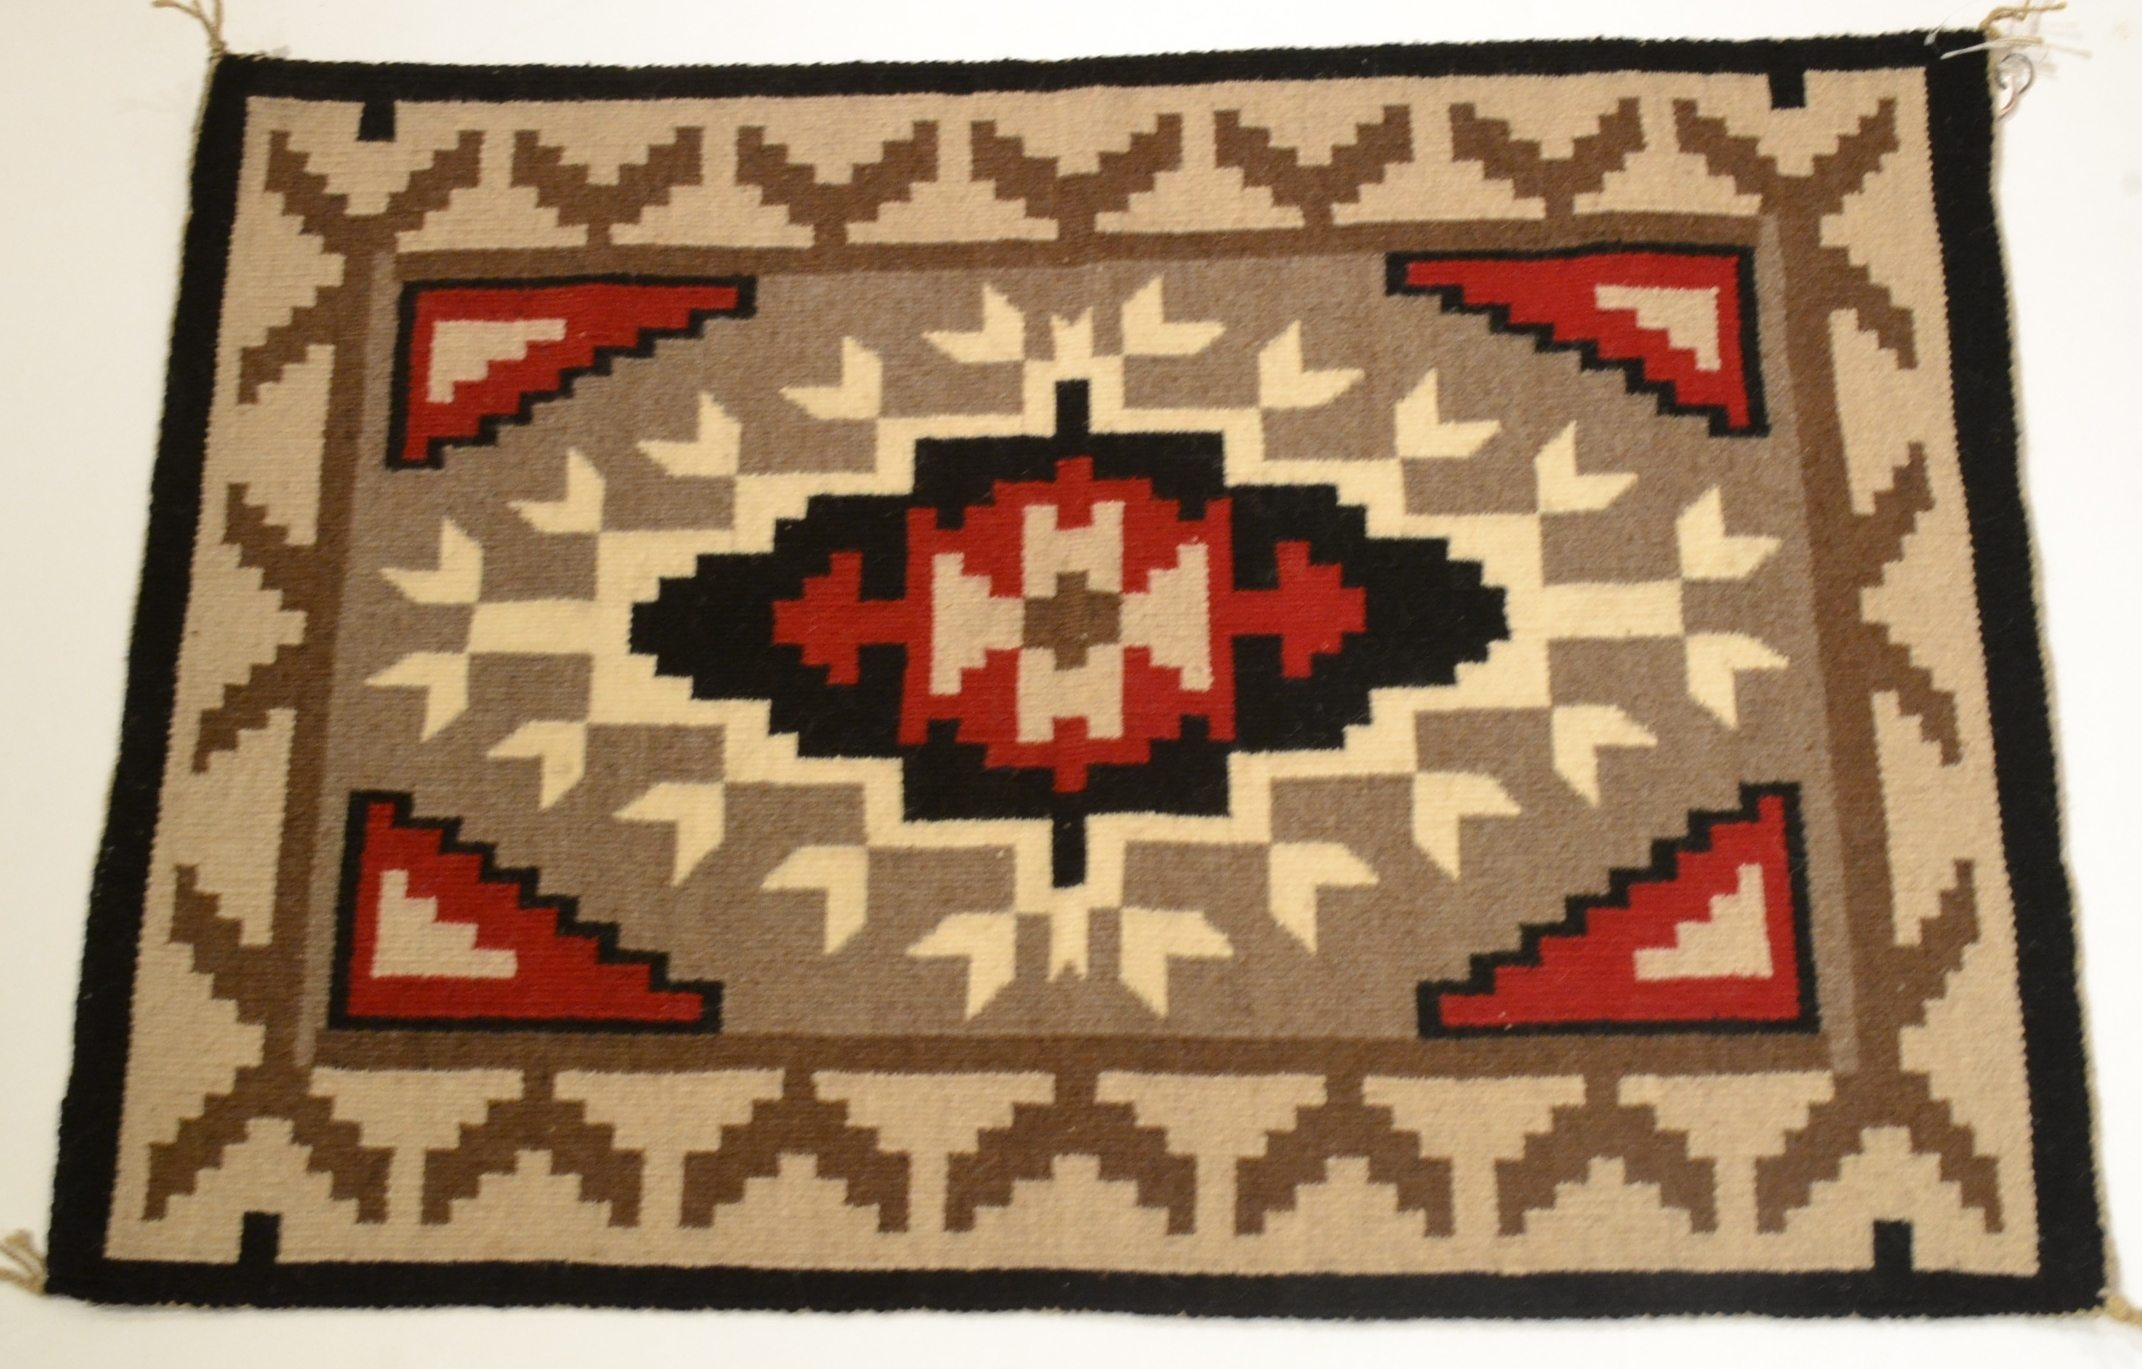 transitional p tribal designs exciting in home with carpetmart decor hues com navajo bring the of nourison aqua native rm american collection textile area these bright rugs colorful rug